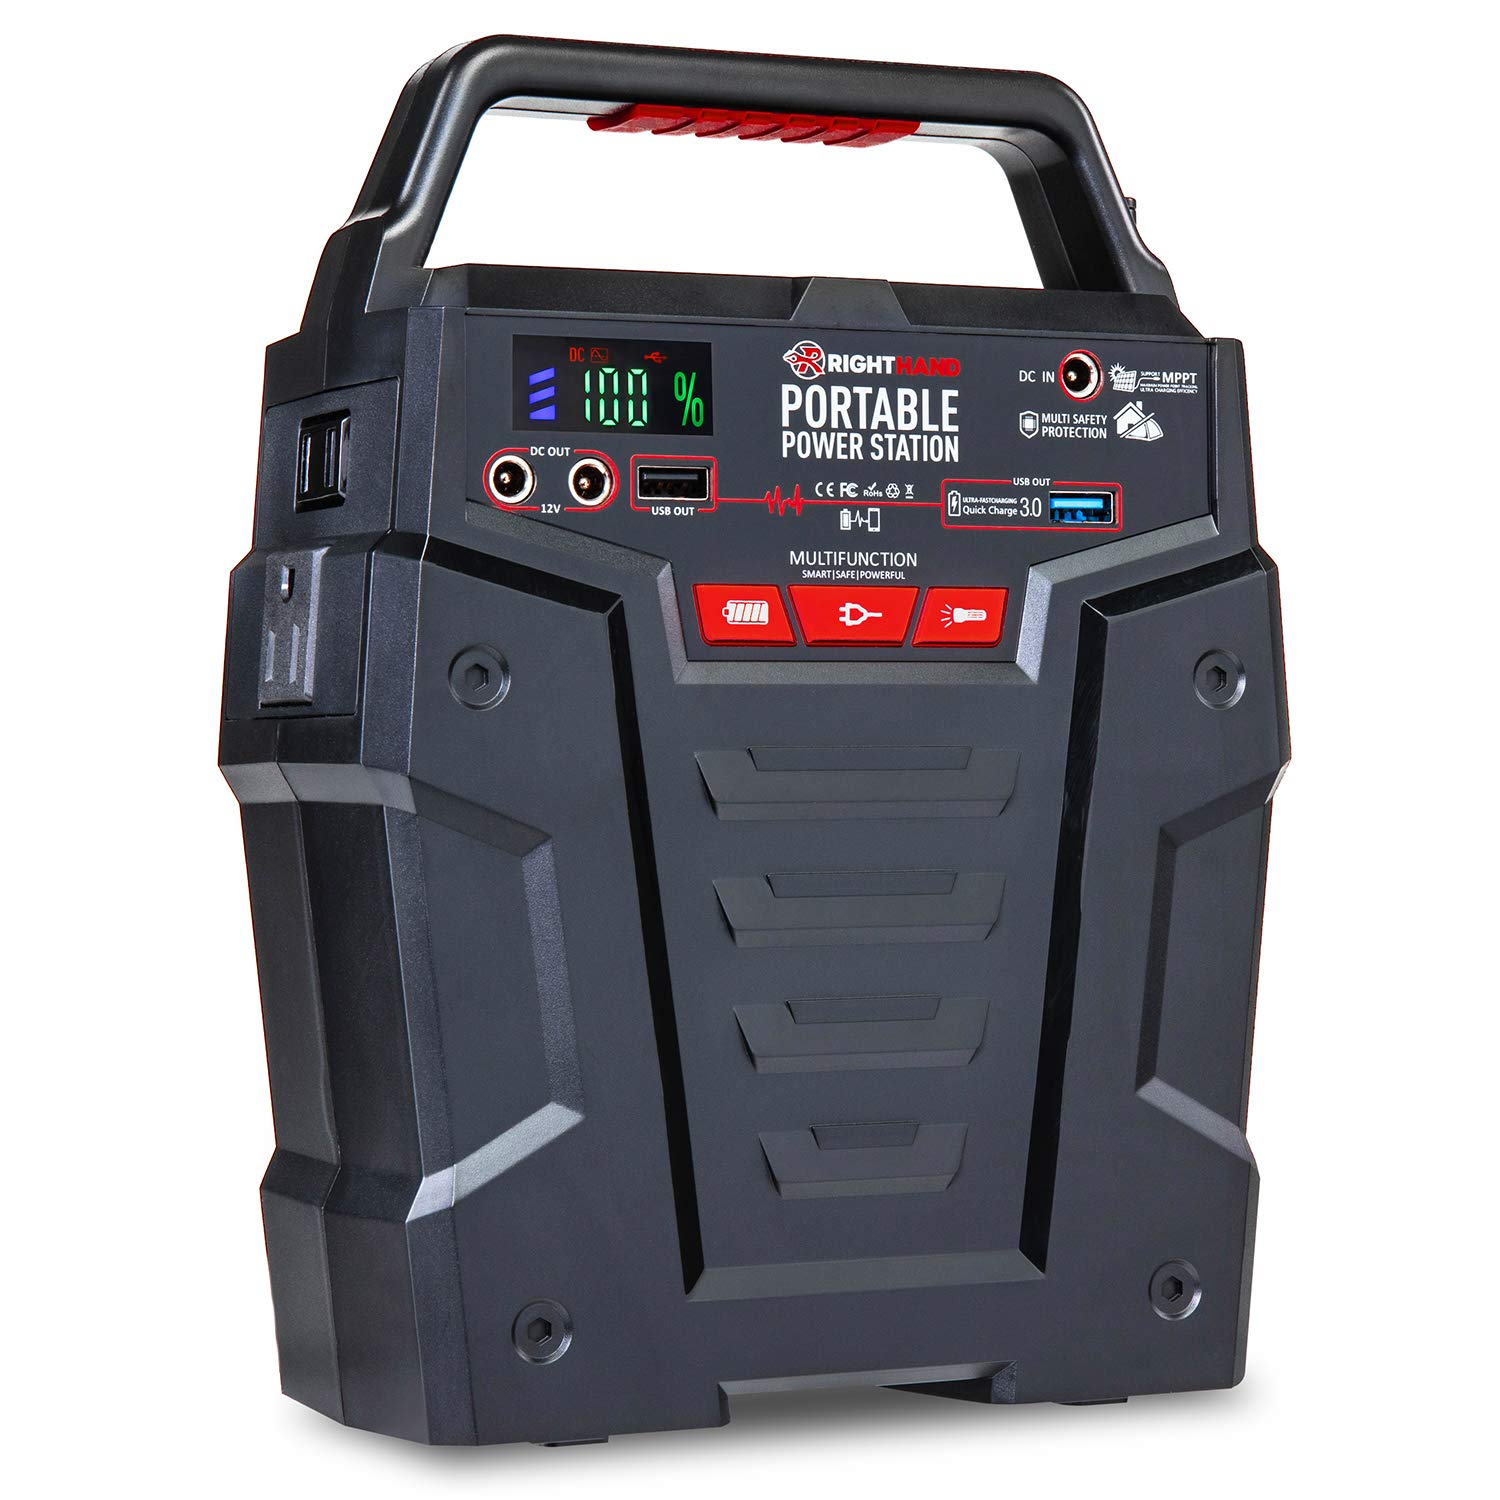 Portable Power Station 155Wh Gas Free Generator - Rechargeable by Solar Panel, Wall Outlet, 12V Car Charger - Dual 110V AC Outlet - 2 DC Ports, 2 USB Ports (1 QC3.0), Flashlight by Right Hand